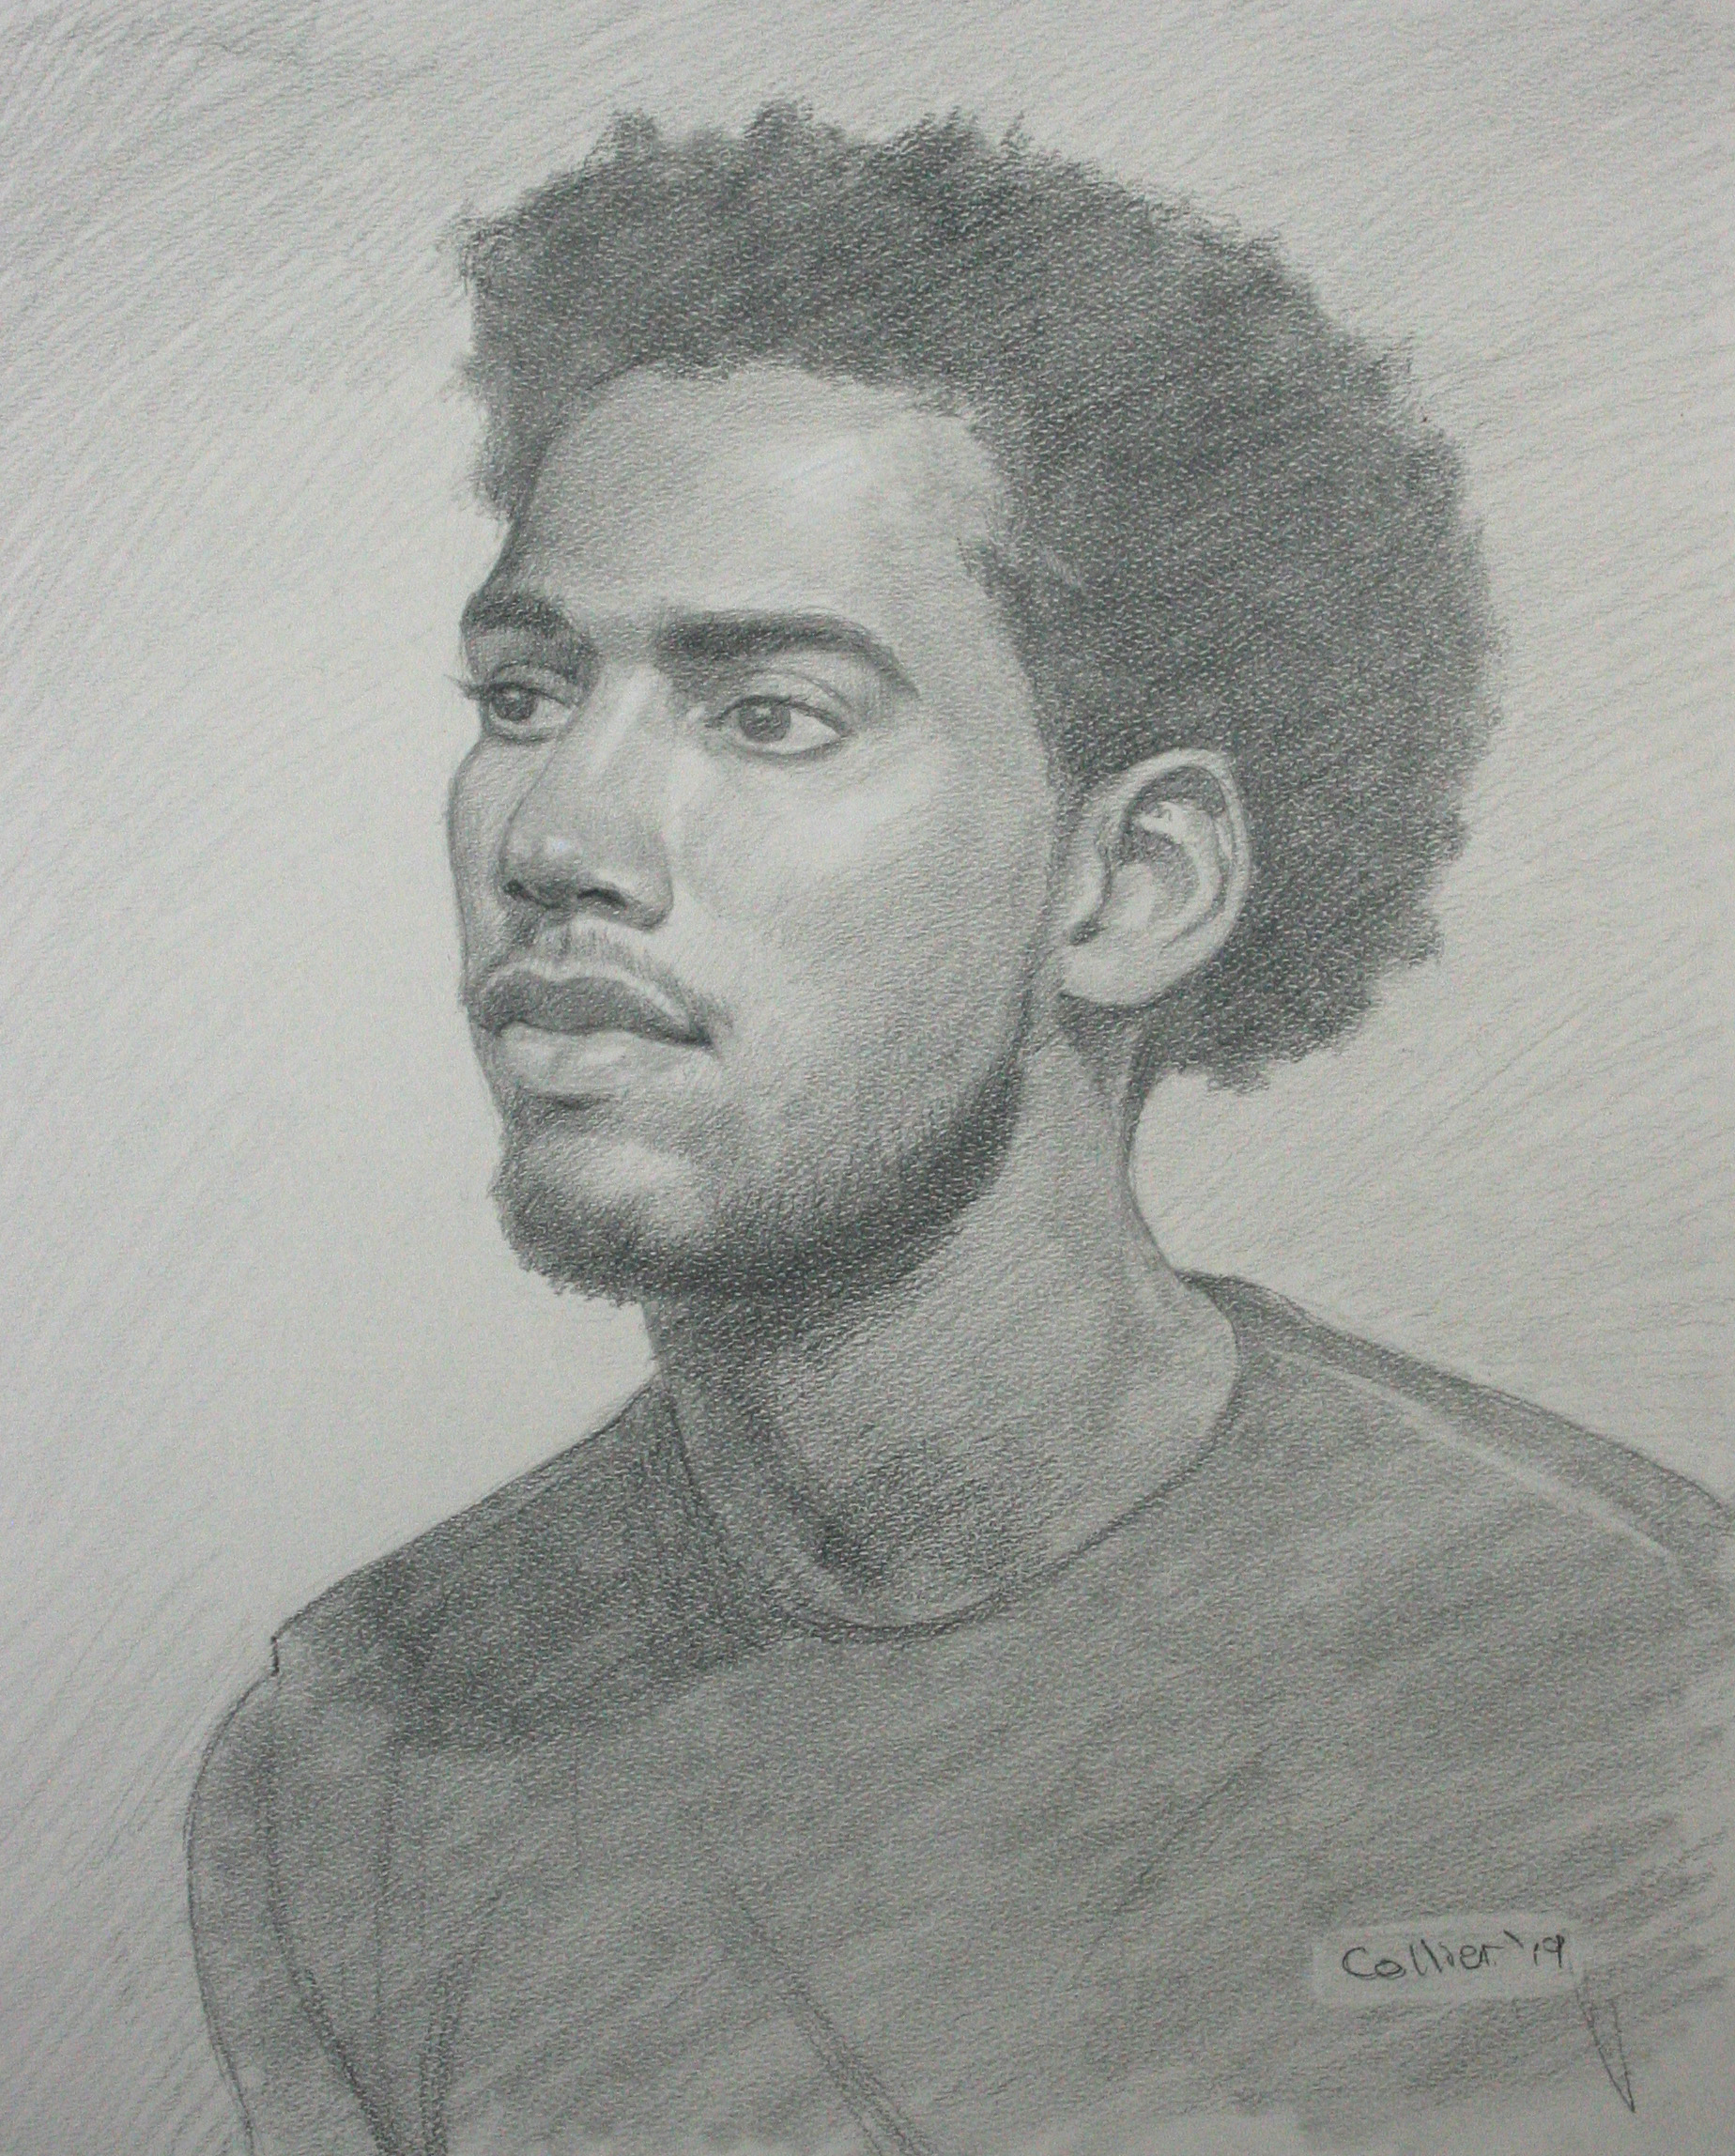 Howard Collier - Graphite